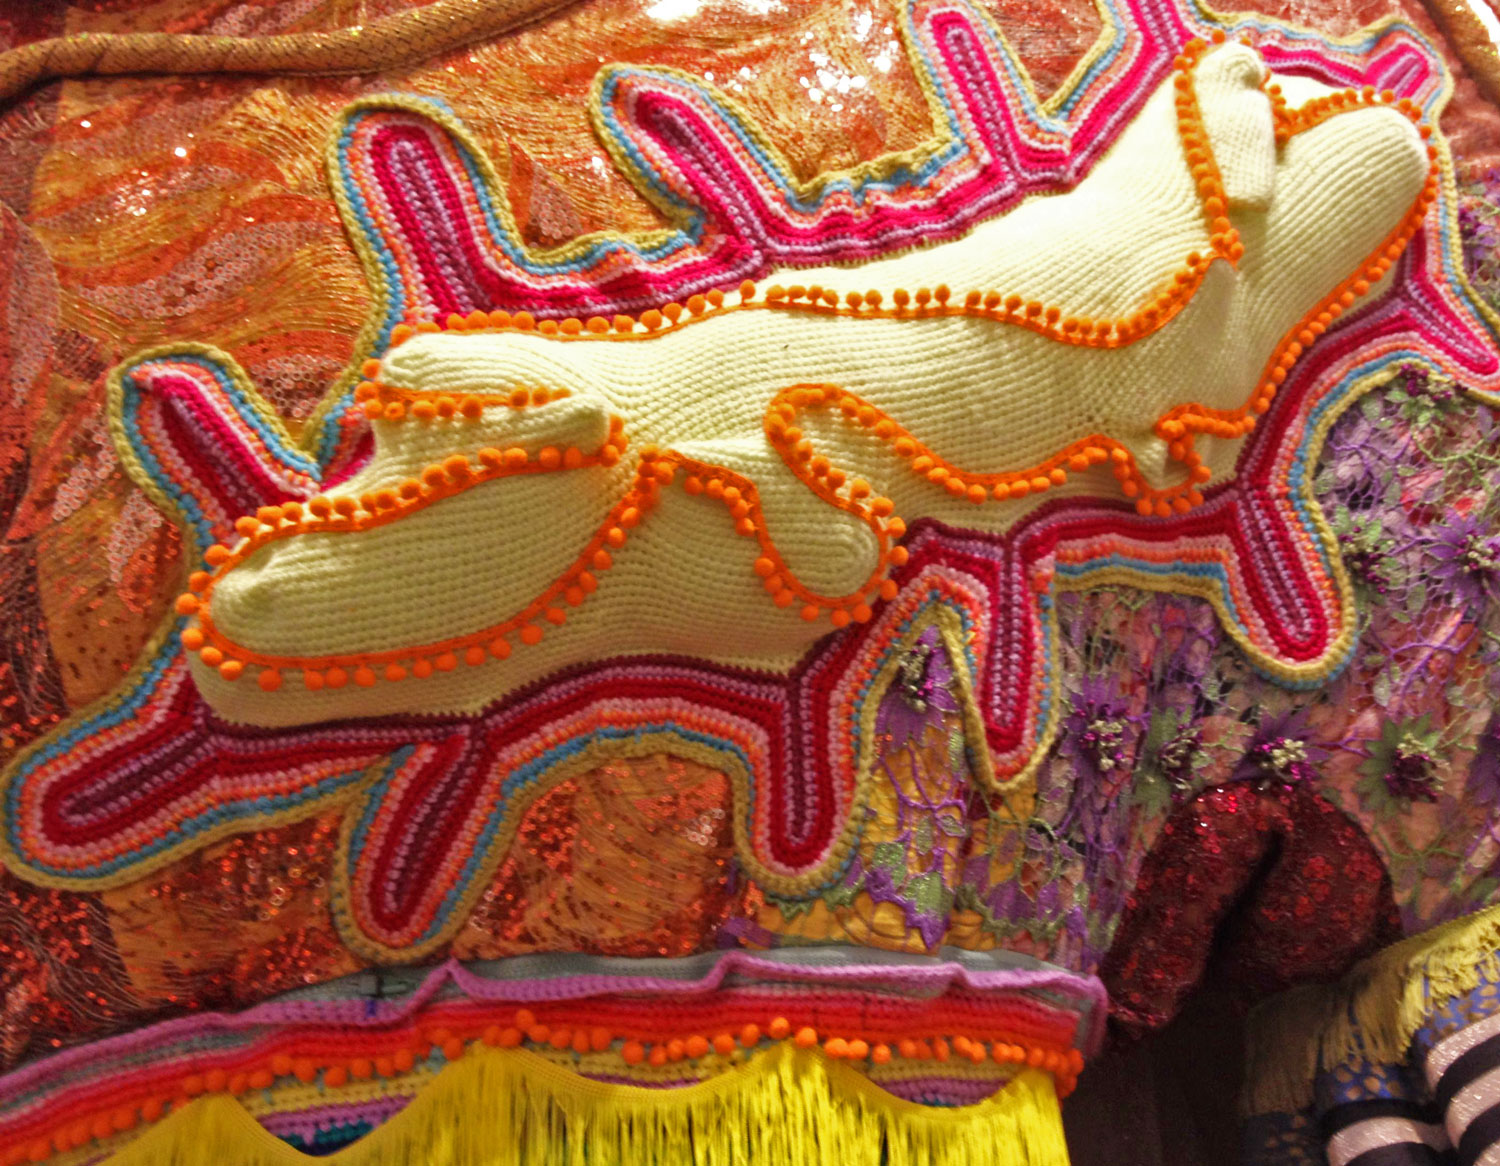 Detail of work by Joana Vasconcelos